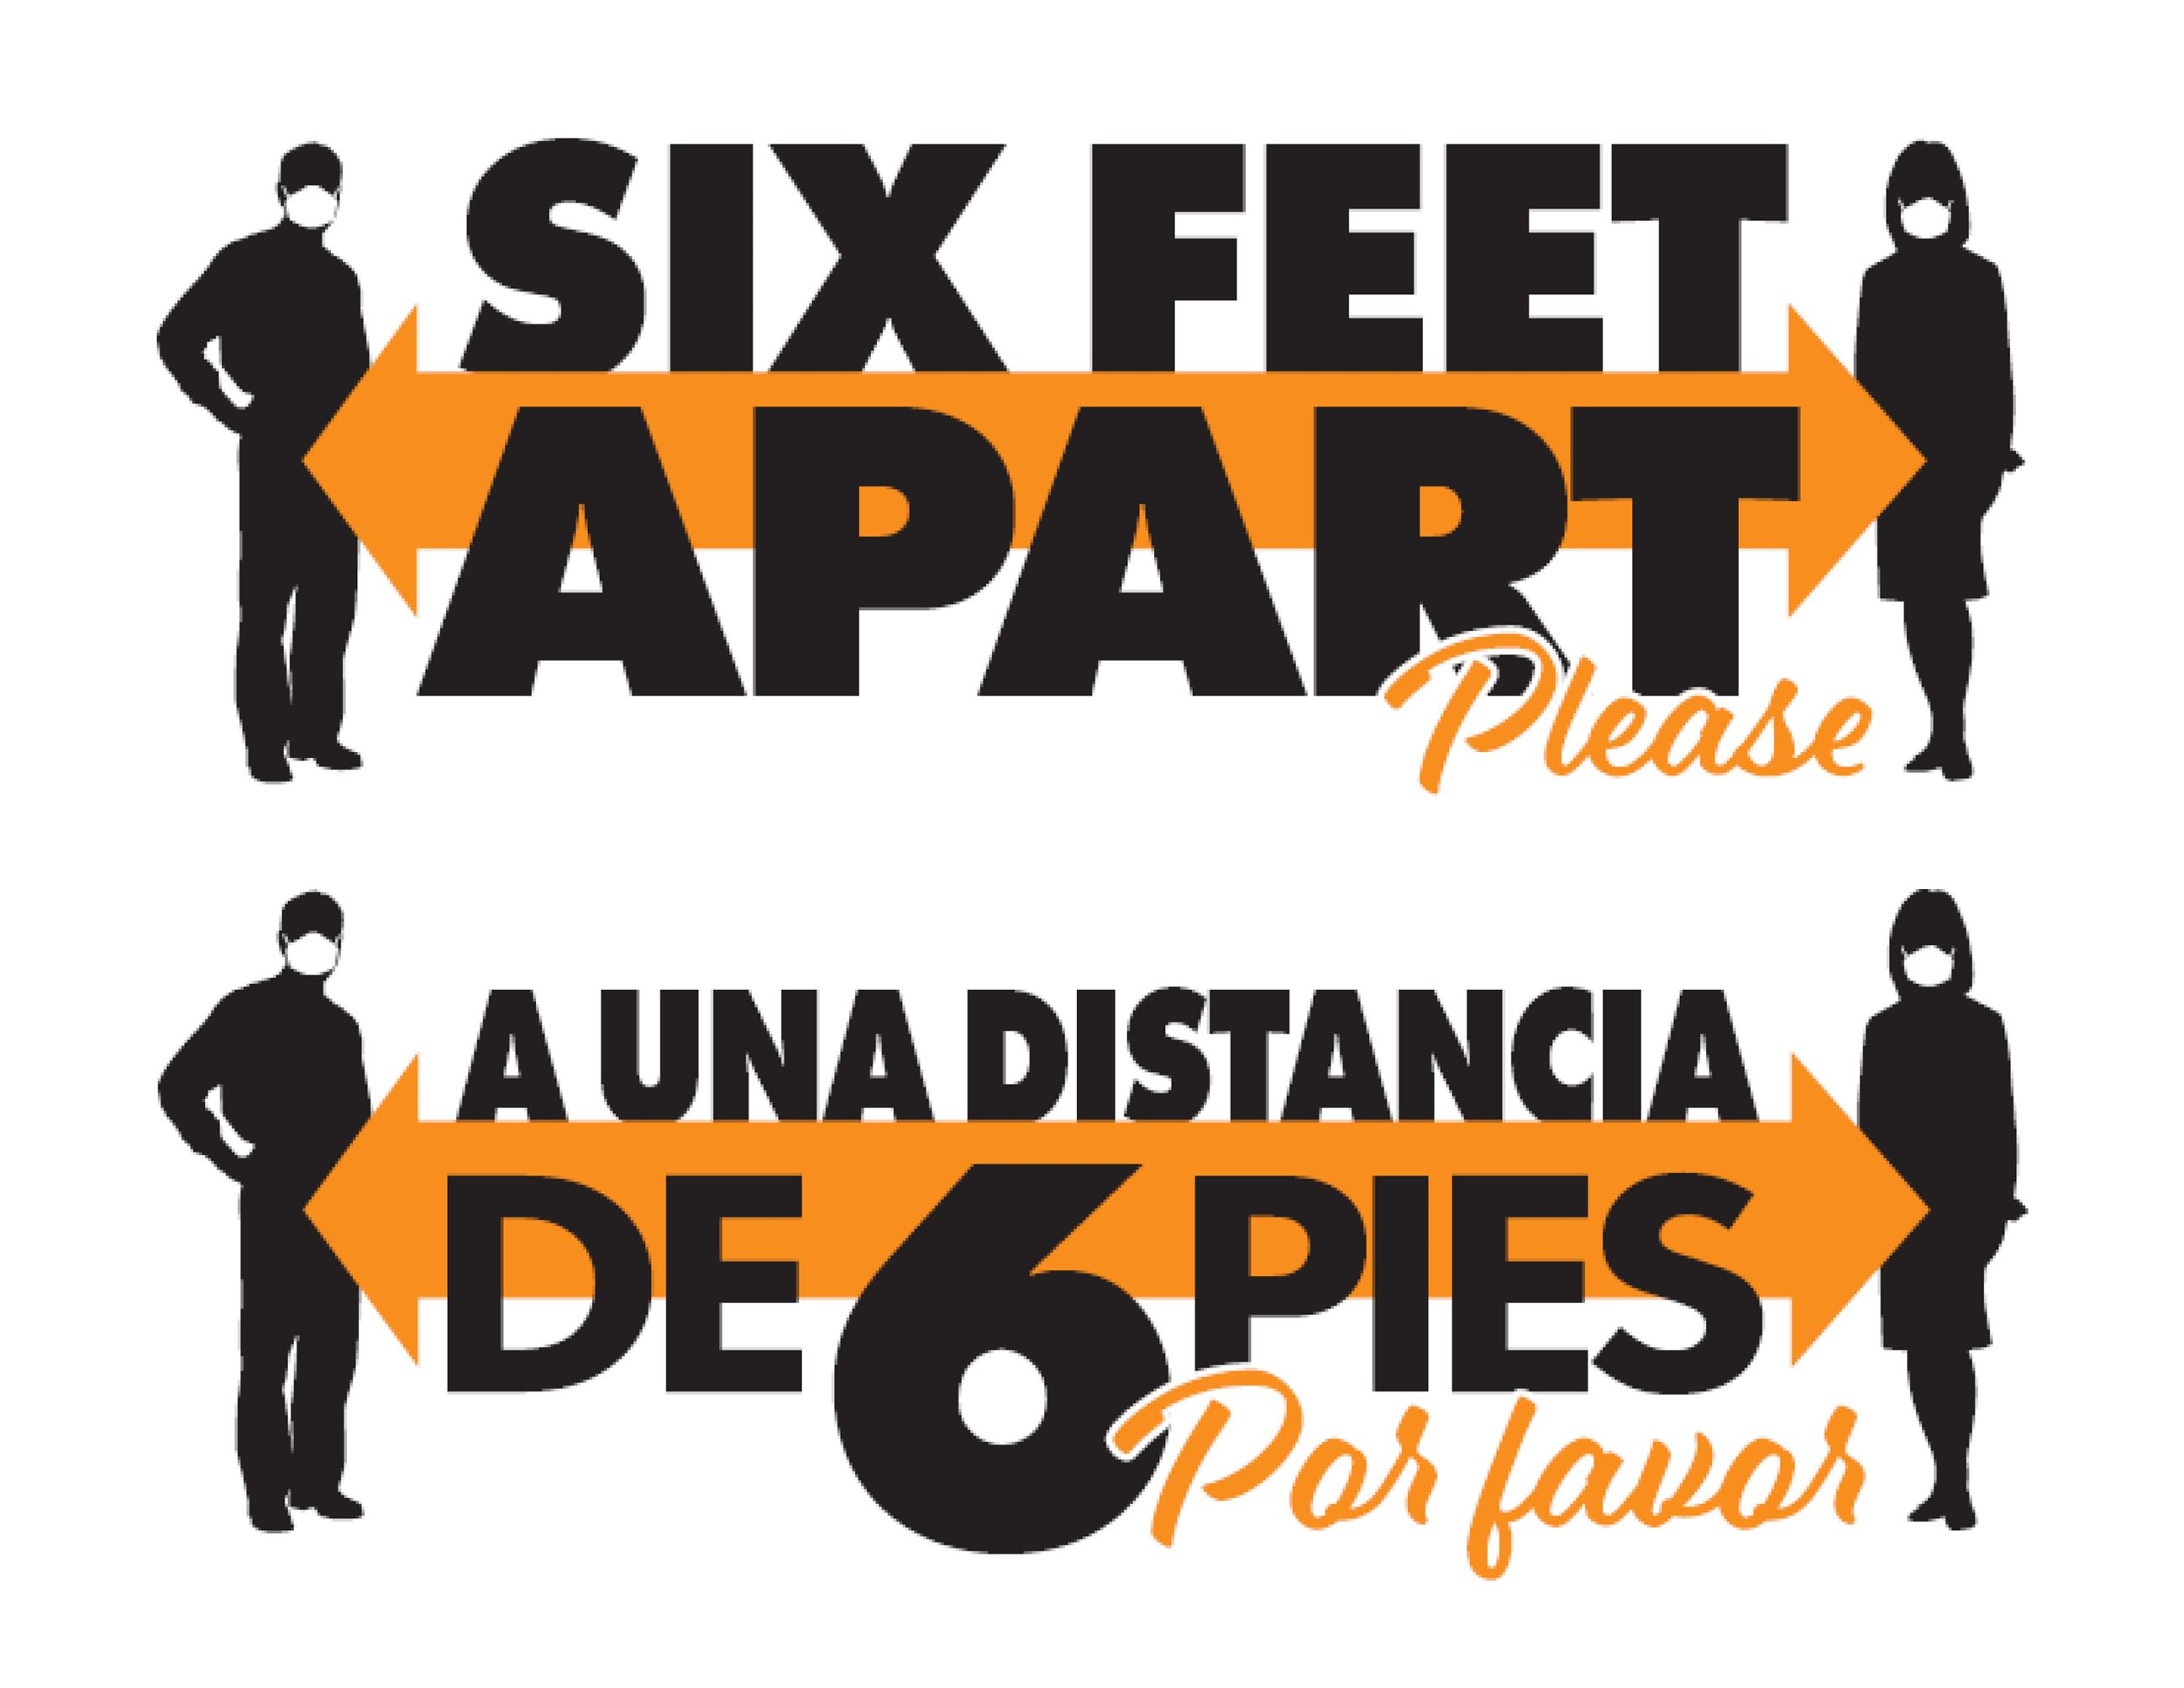 8_5x11_printable_english_spanish_6_feet_apart